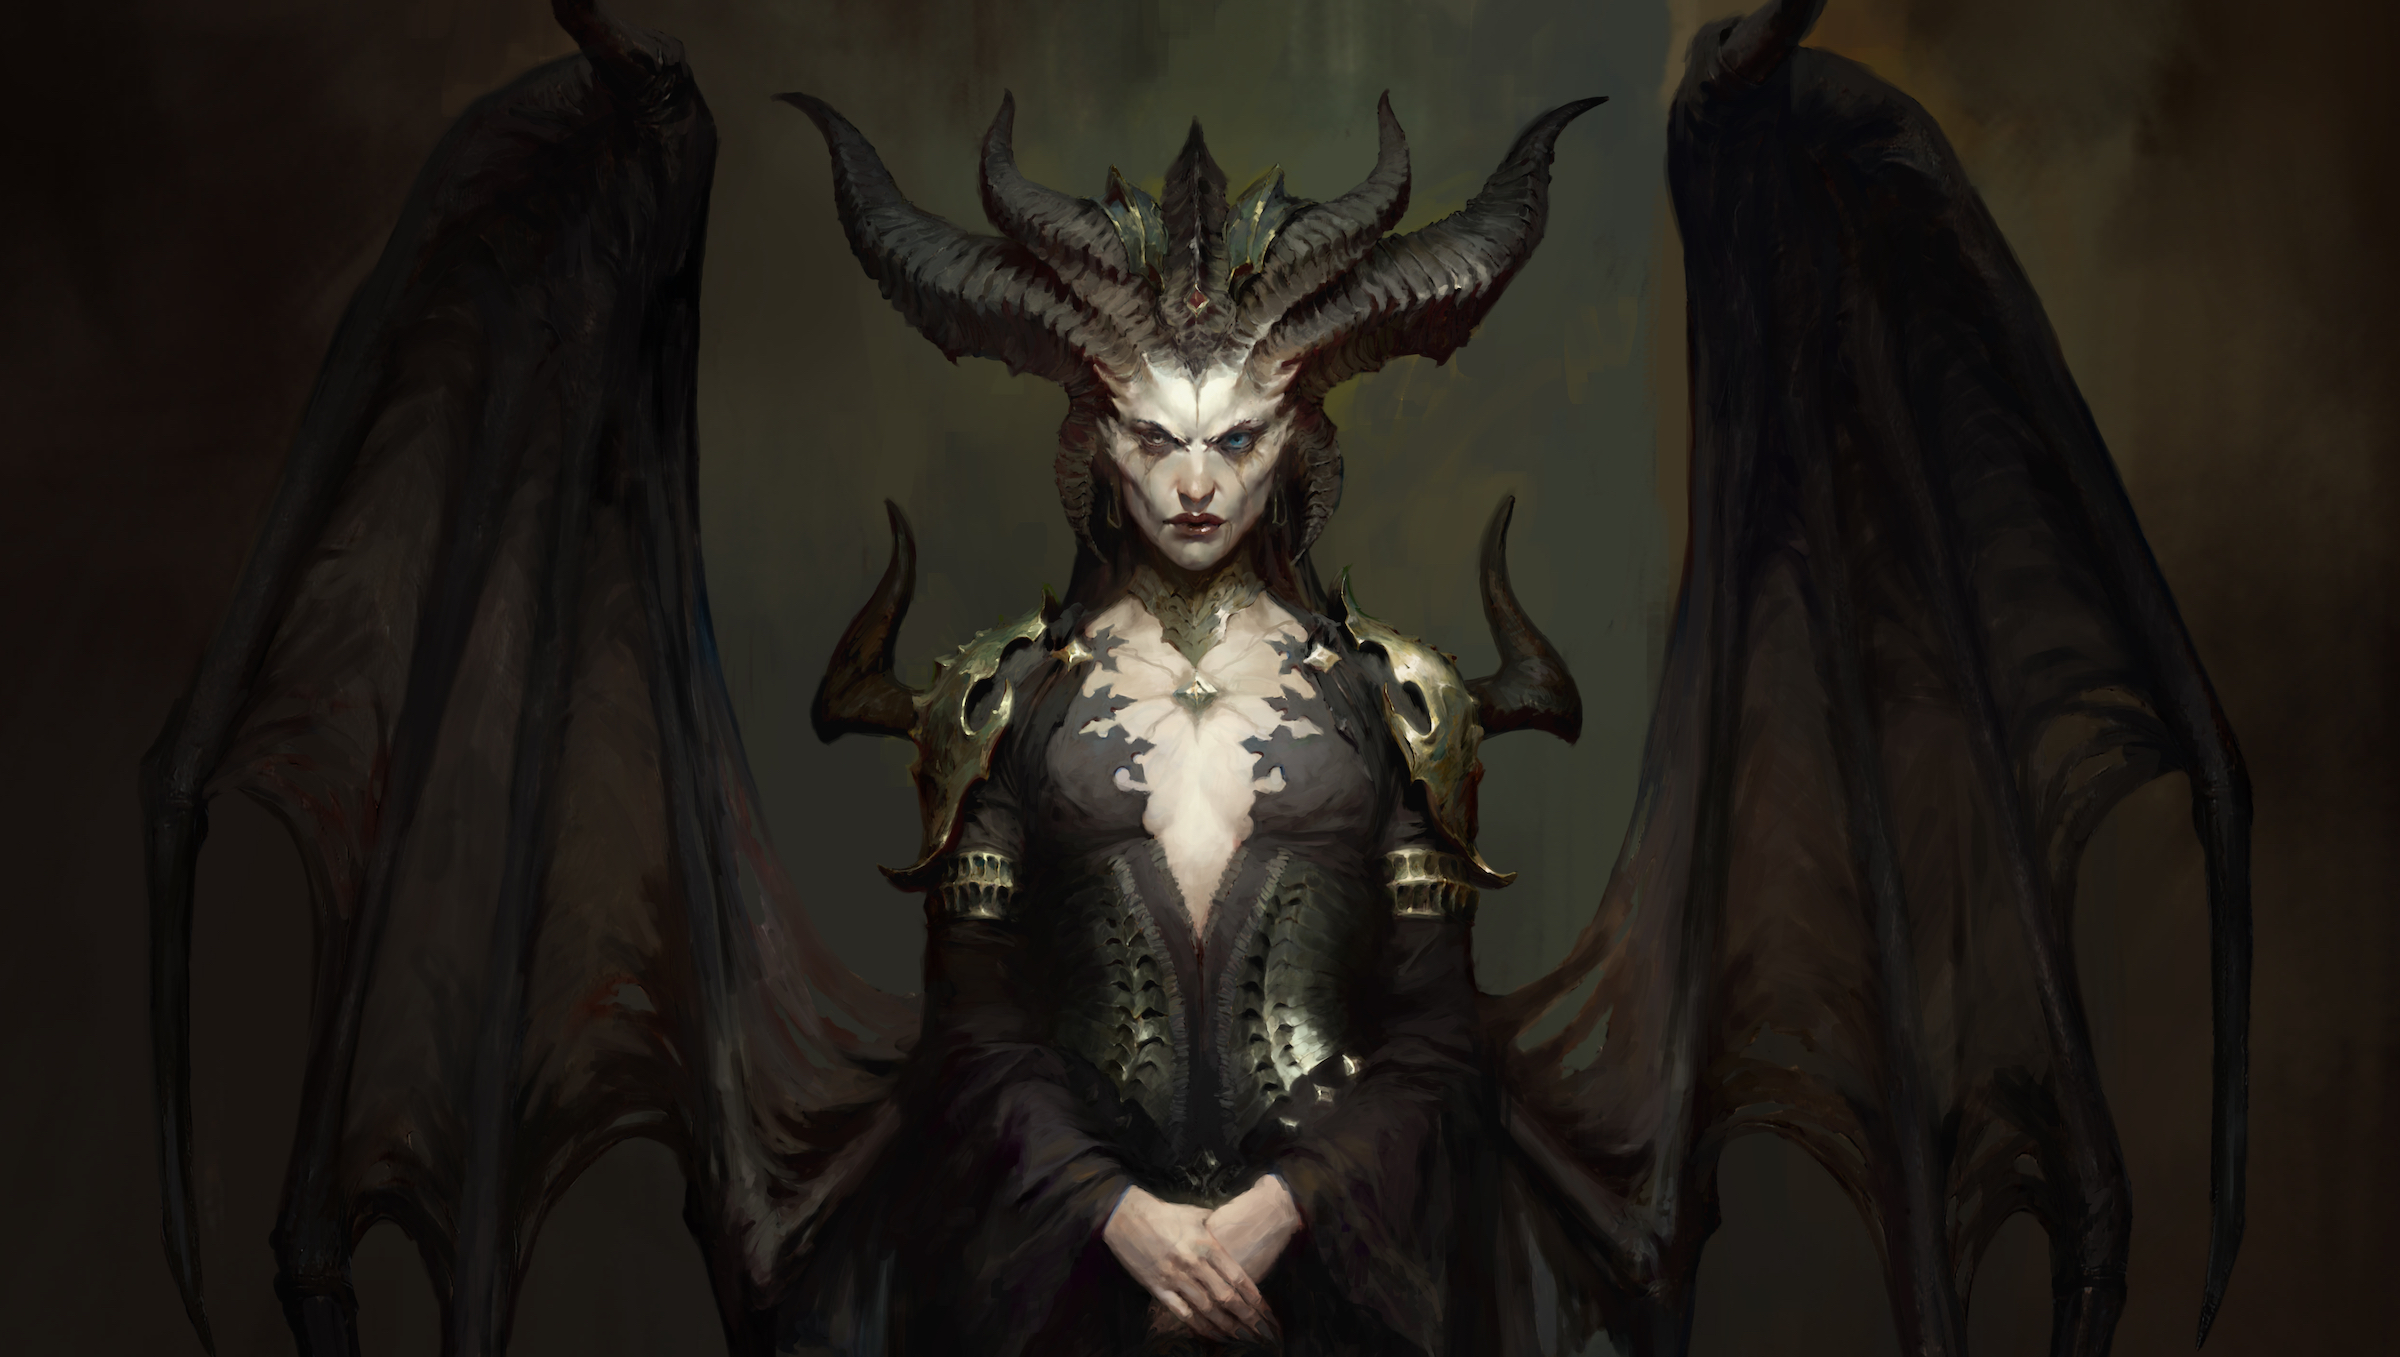 Diablo 4 - concept art of Lilith, the daughter of Mephisto. She is a horned woman with massive wings and an intimidating expression.